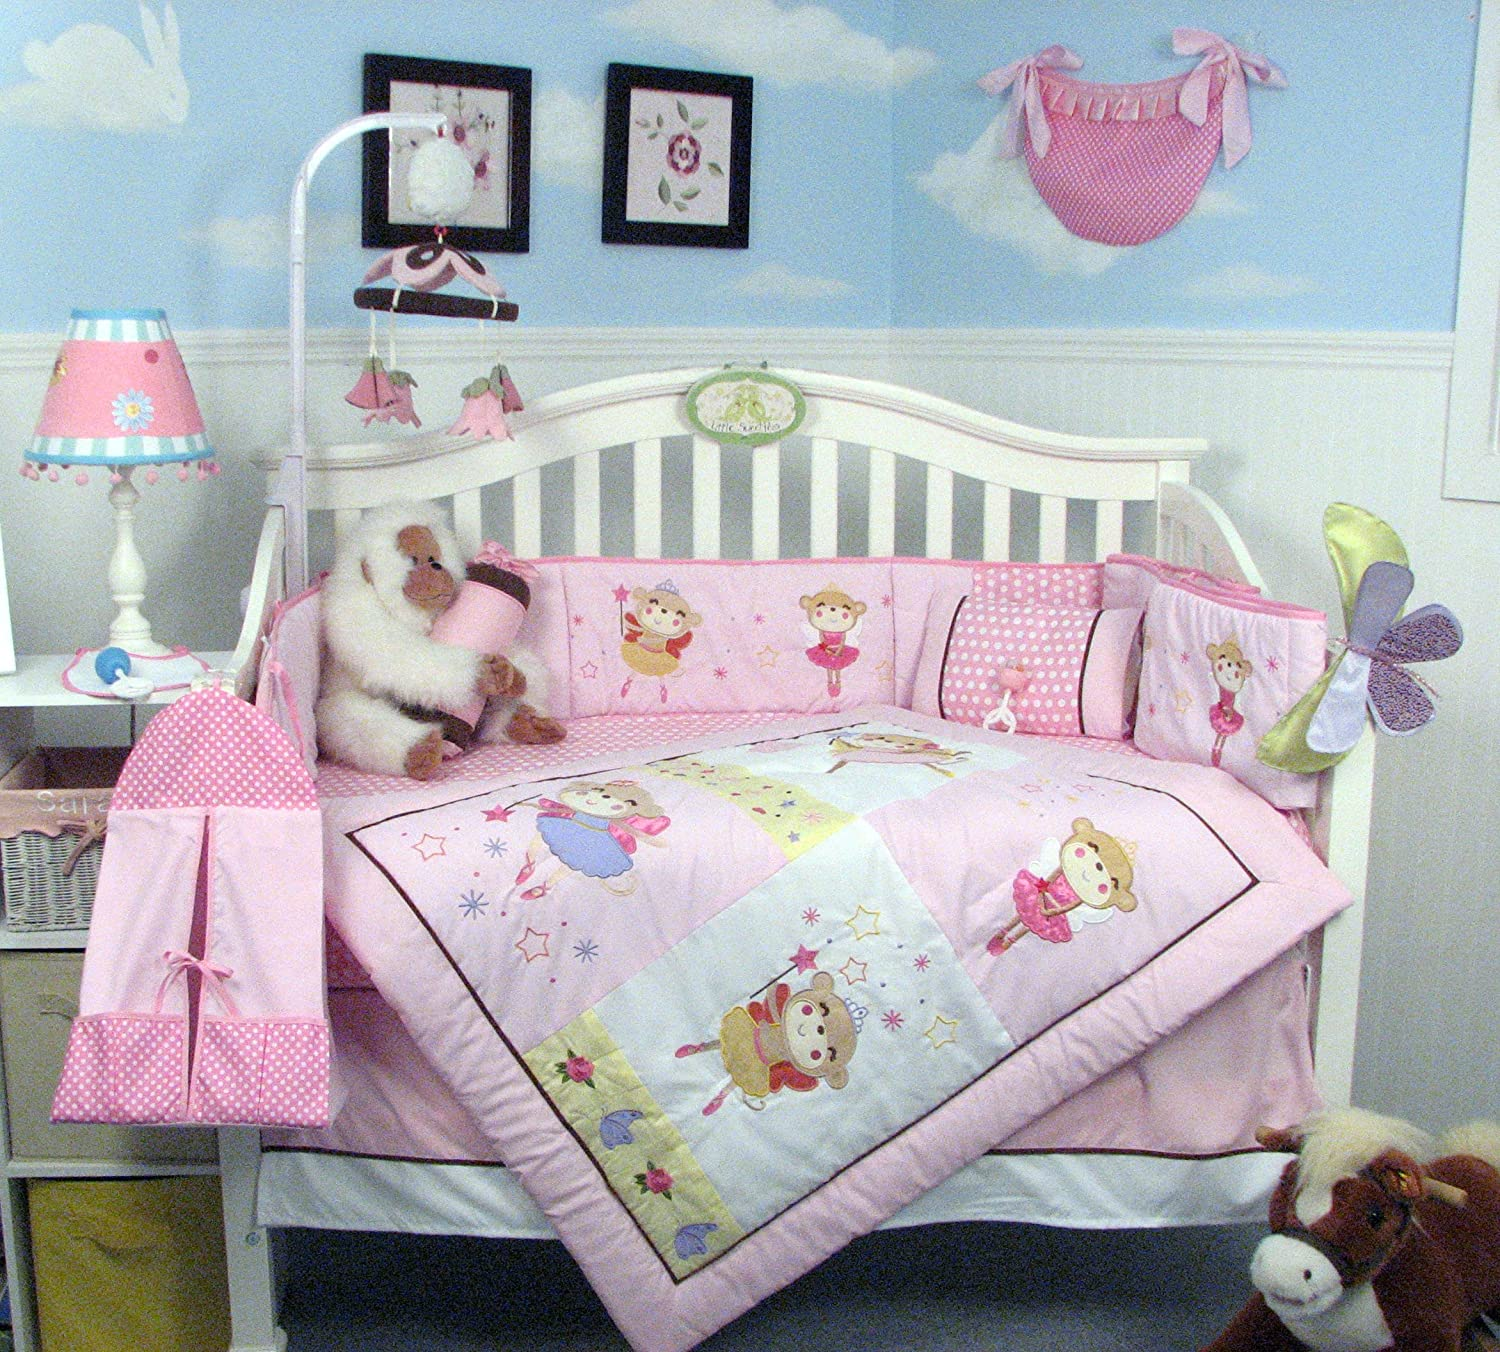 Soho Little Dancing Bears Crib Bedding